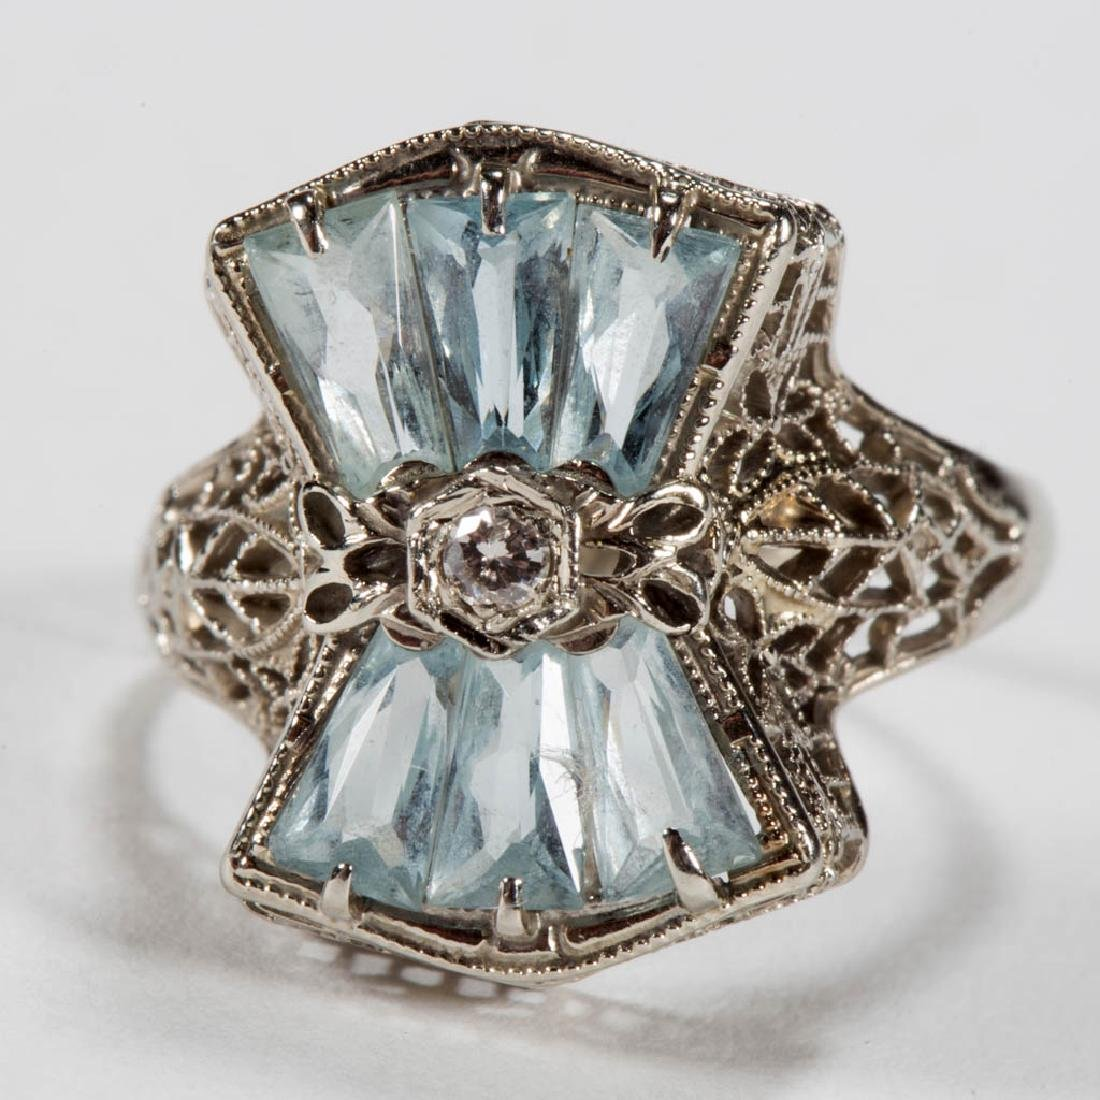 VINTAGE 14K WHITE GOLD, DIAMOND, AND AQUAMARINE LADY'S